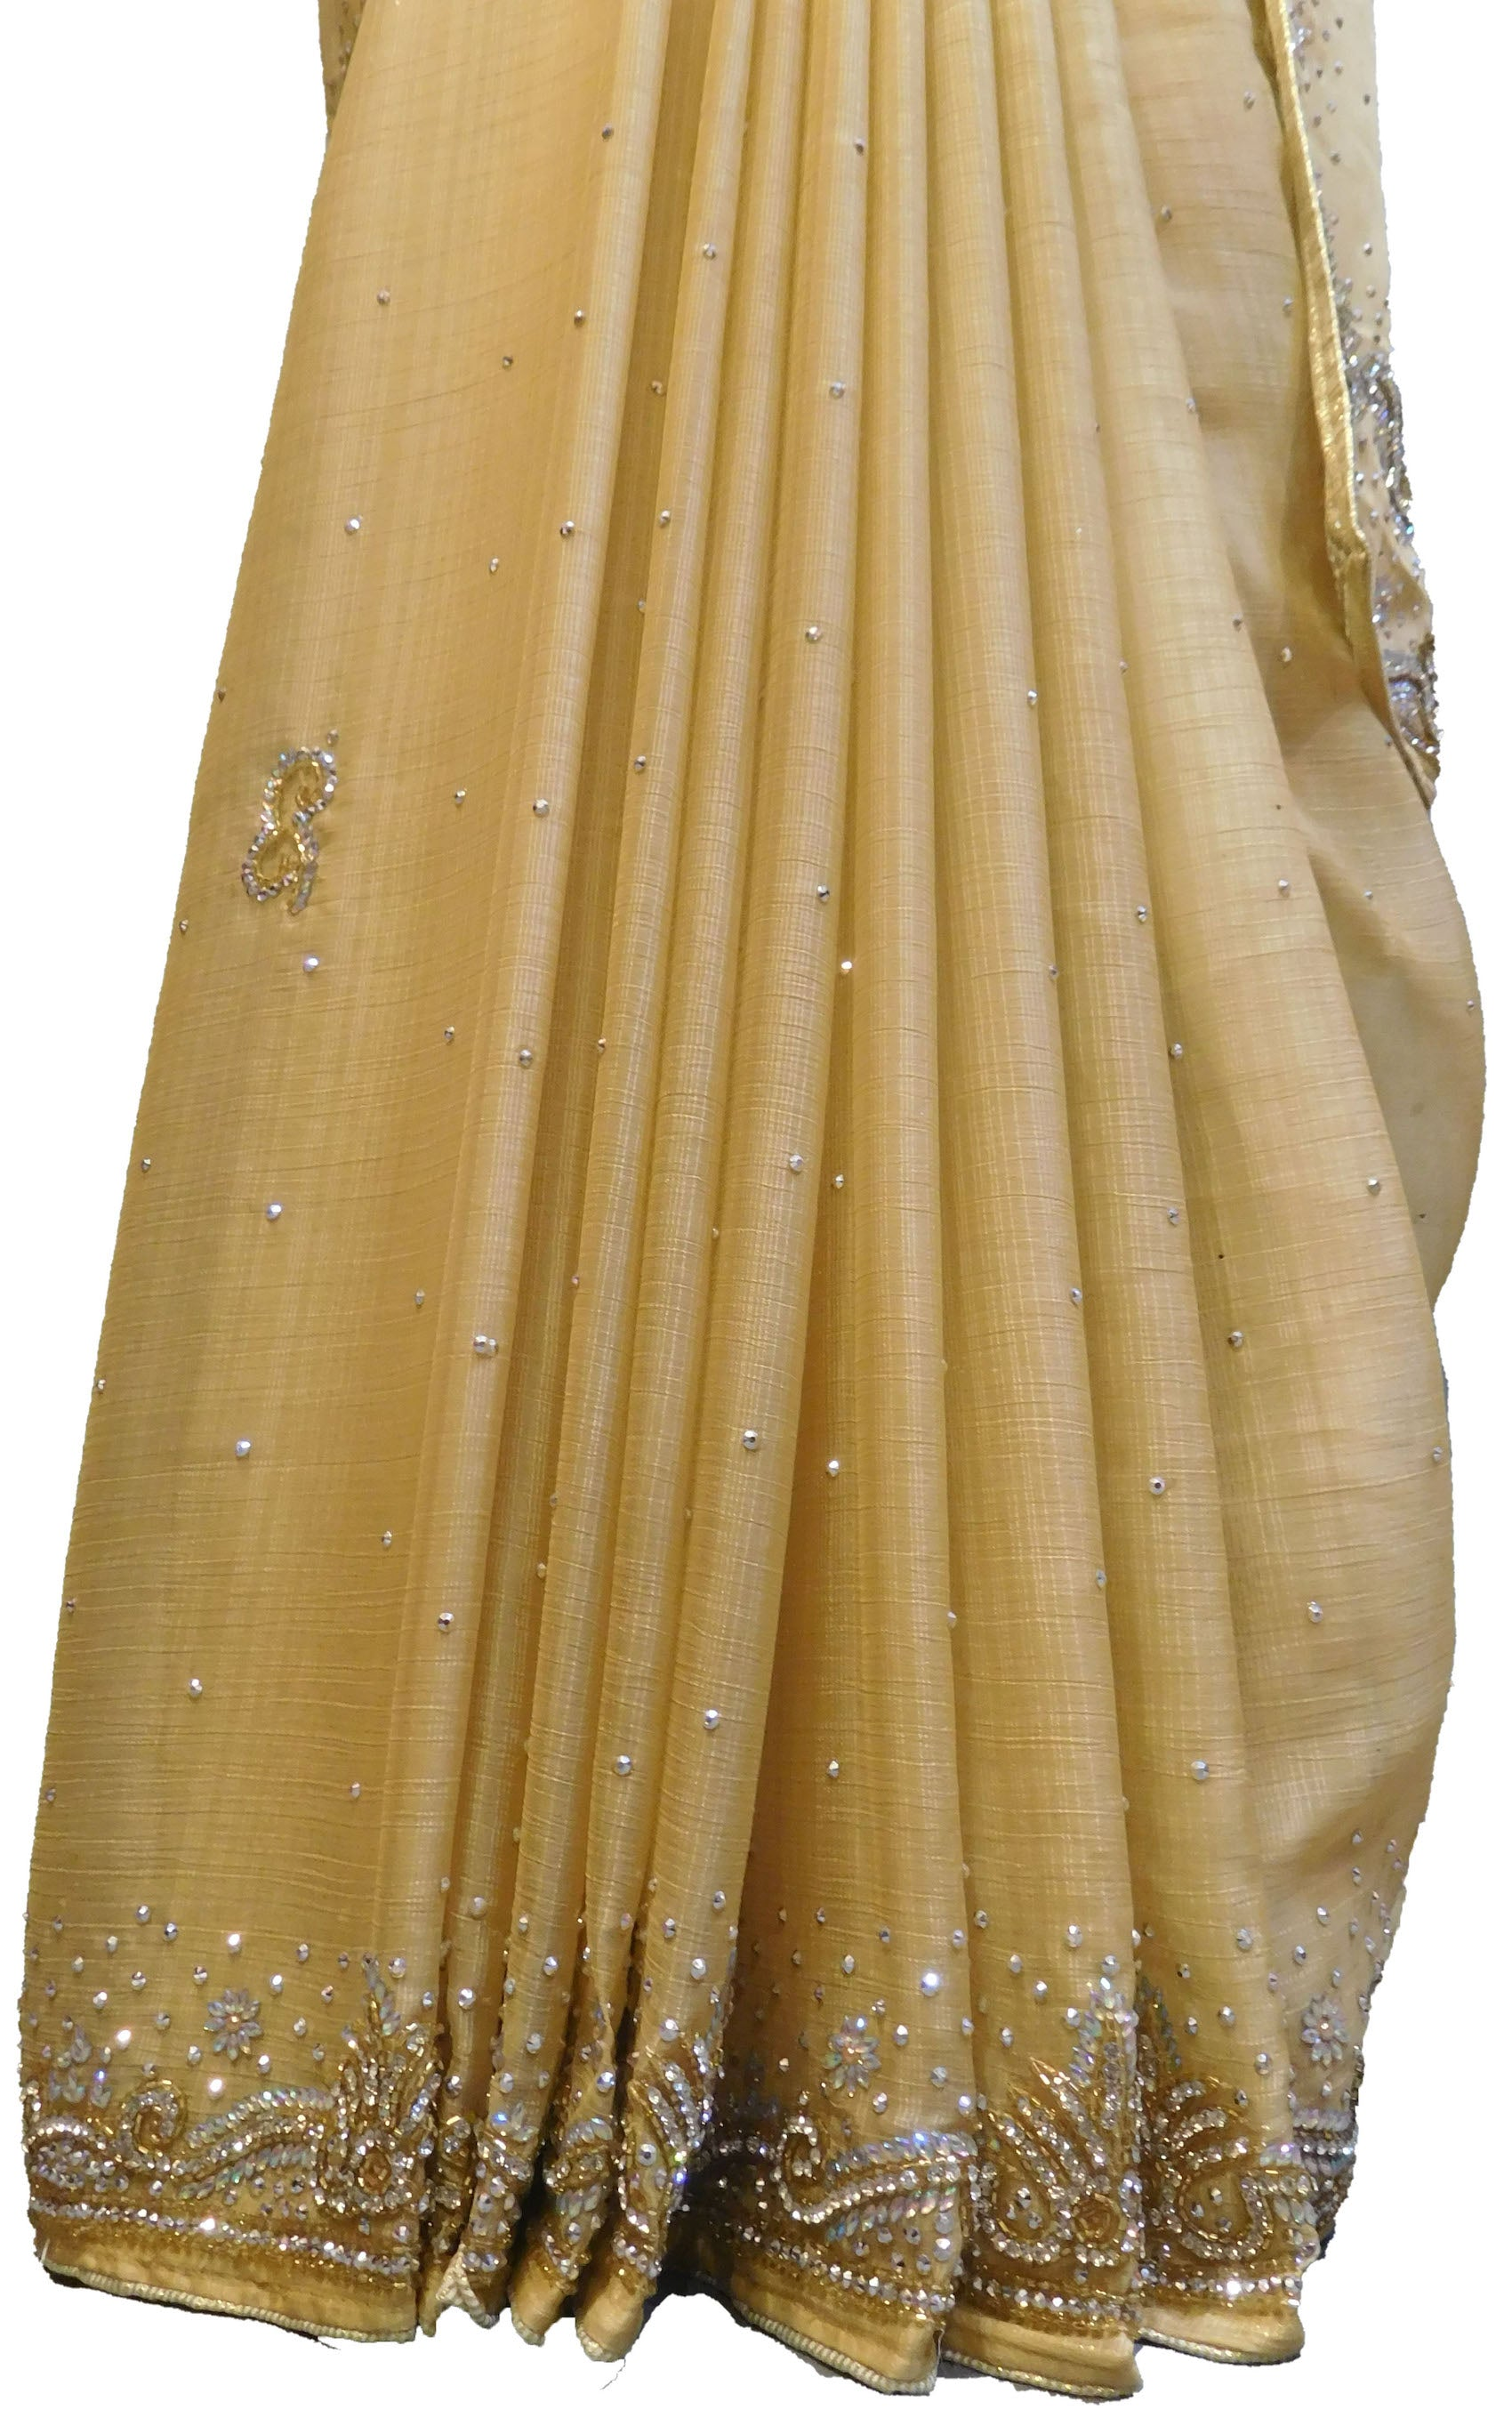 SMSAREE  yellow Designer Wedding Partywear Crepe (Chinon) Stone & Cutdana Hand Embroidery Work Bridal Saree Sari With Blouse Piece E697